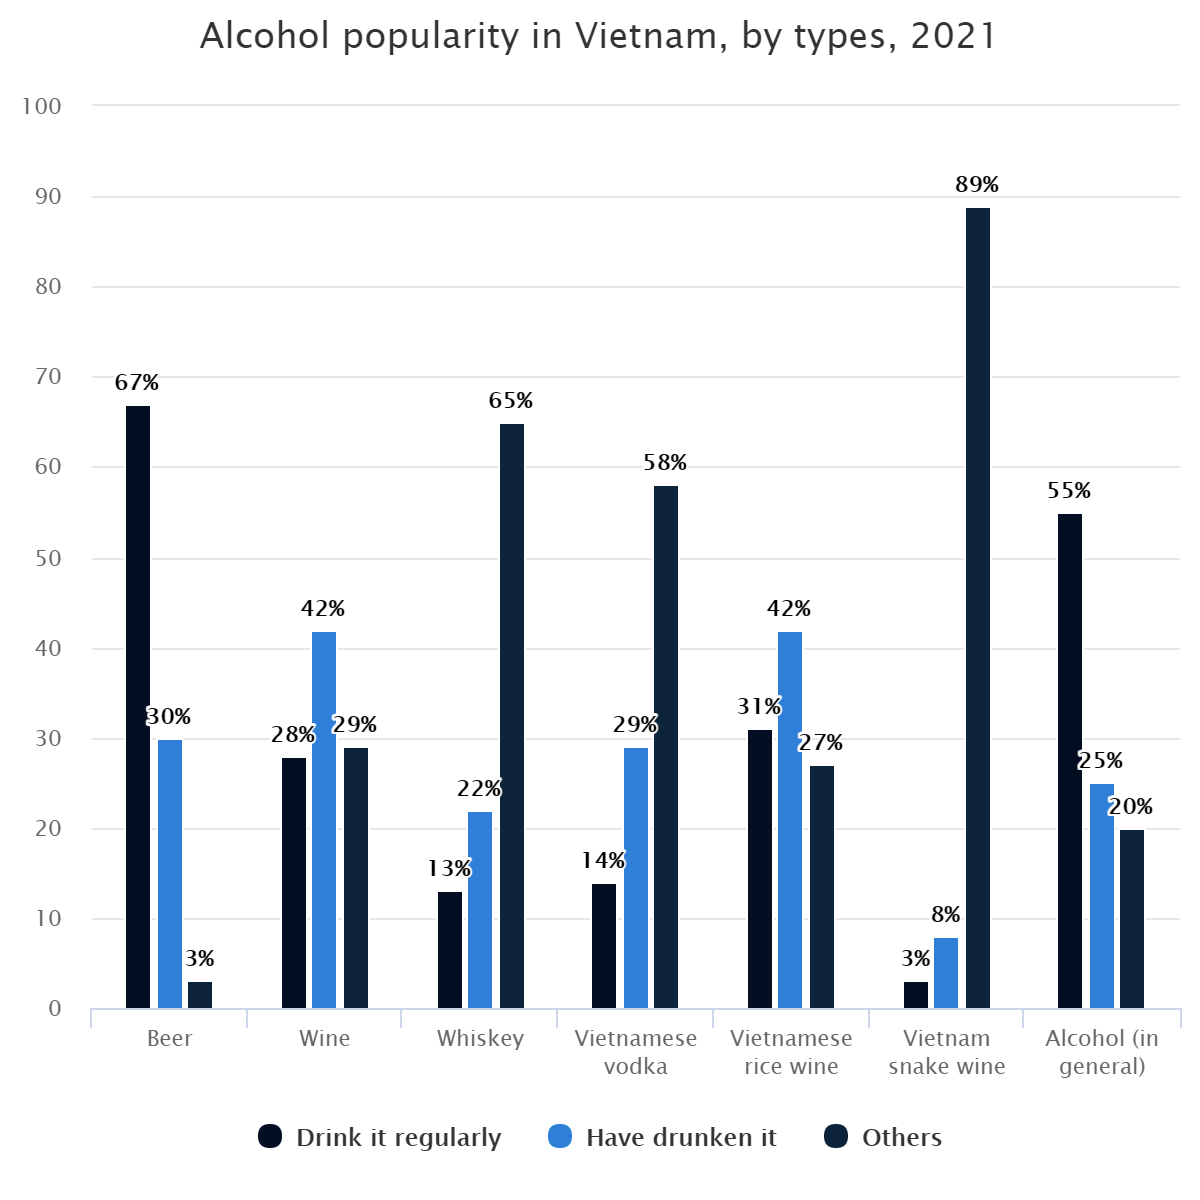 Alcohol popularity in Vietnam, by types, 2021